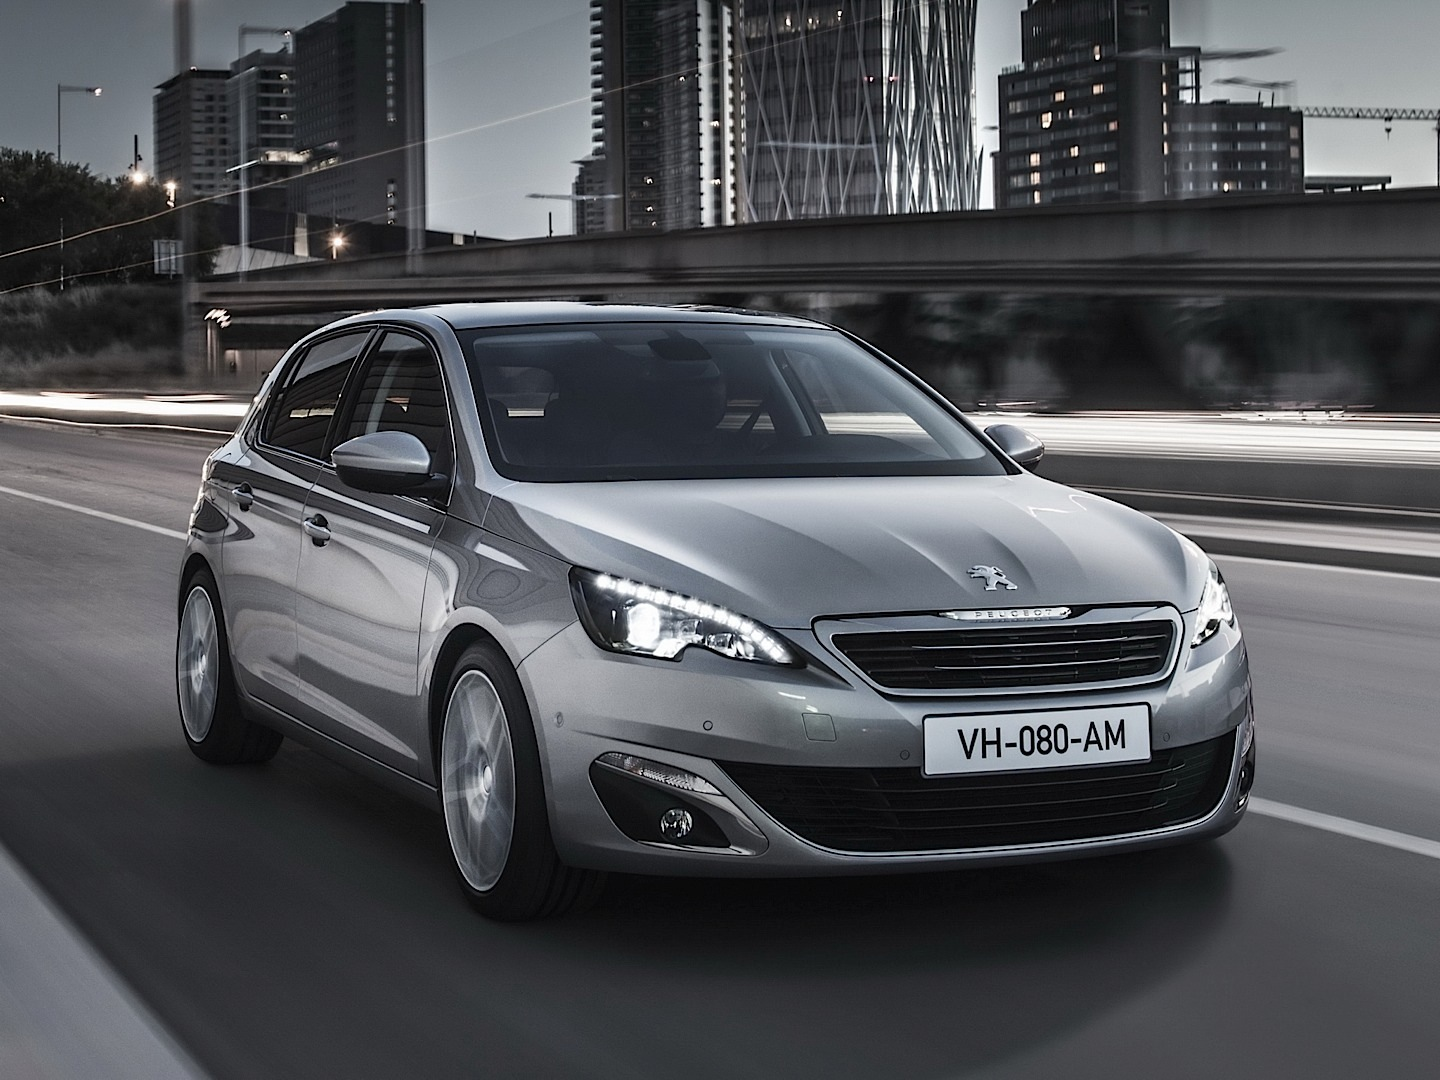 fresh 2014 peugeot 308 photos leaked shed new light on french compact autoevolution. Black Bedroom Furniture Sets. Home Design Ideas